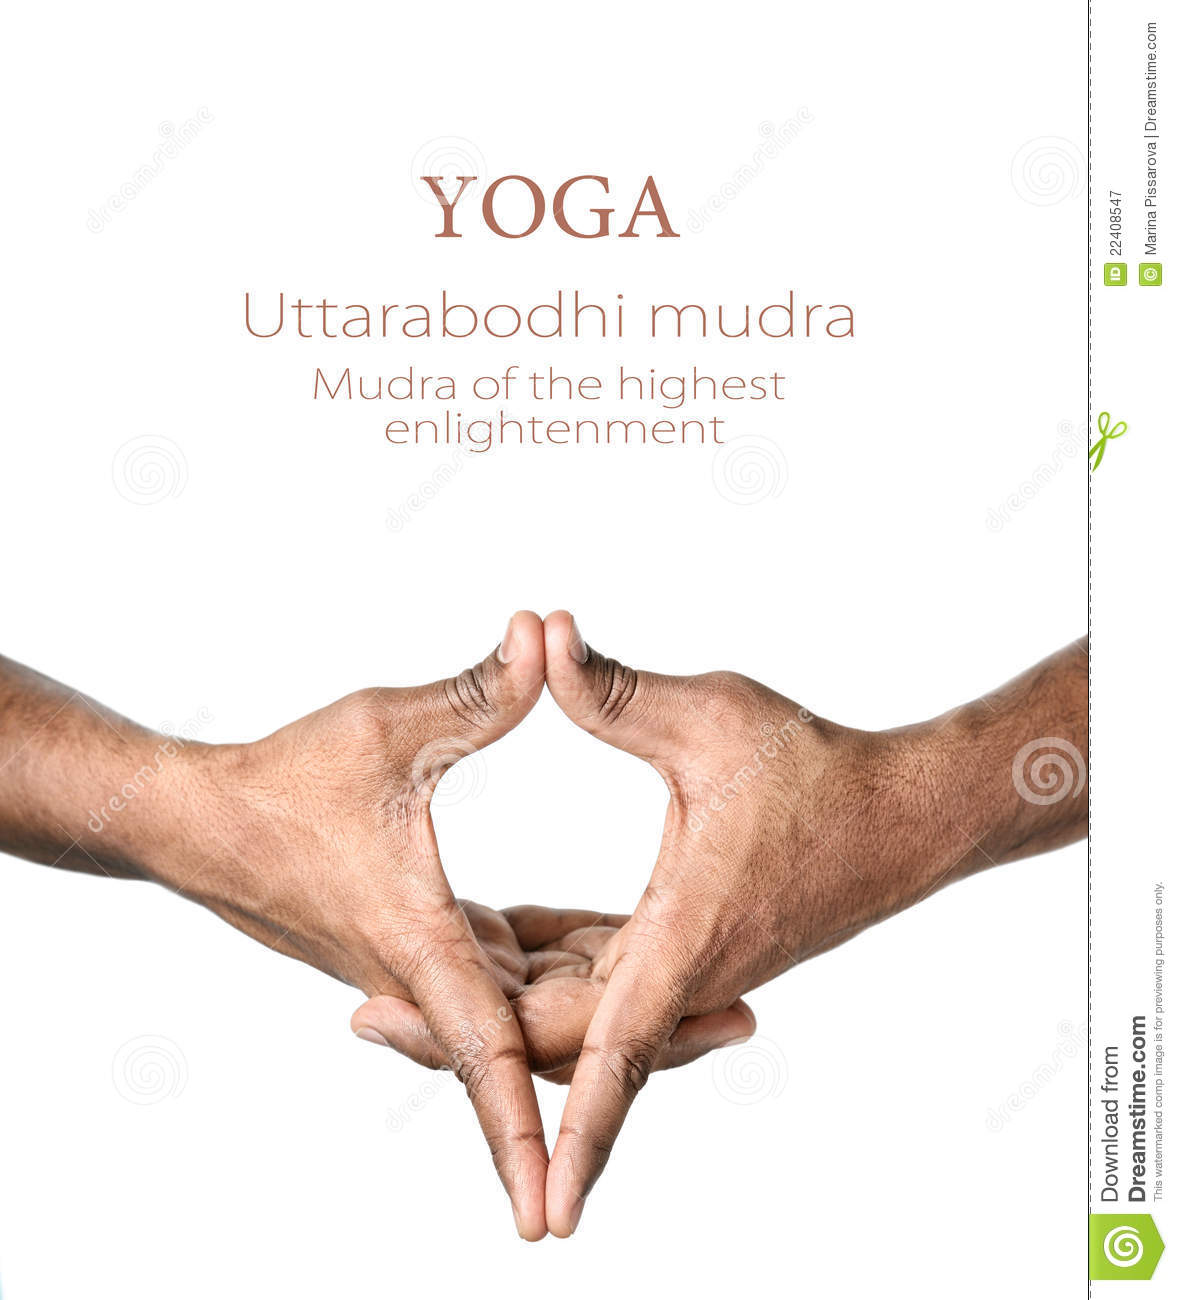 what is the relationship with god in hinduism a mudra